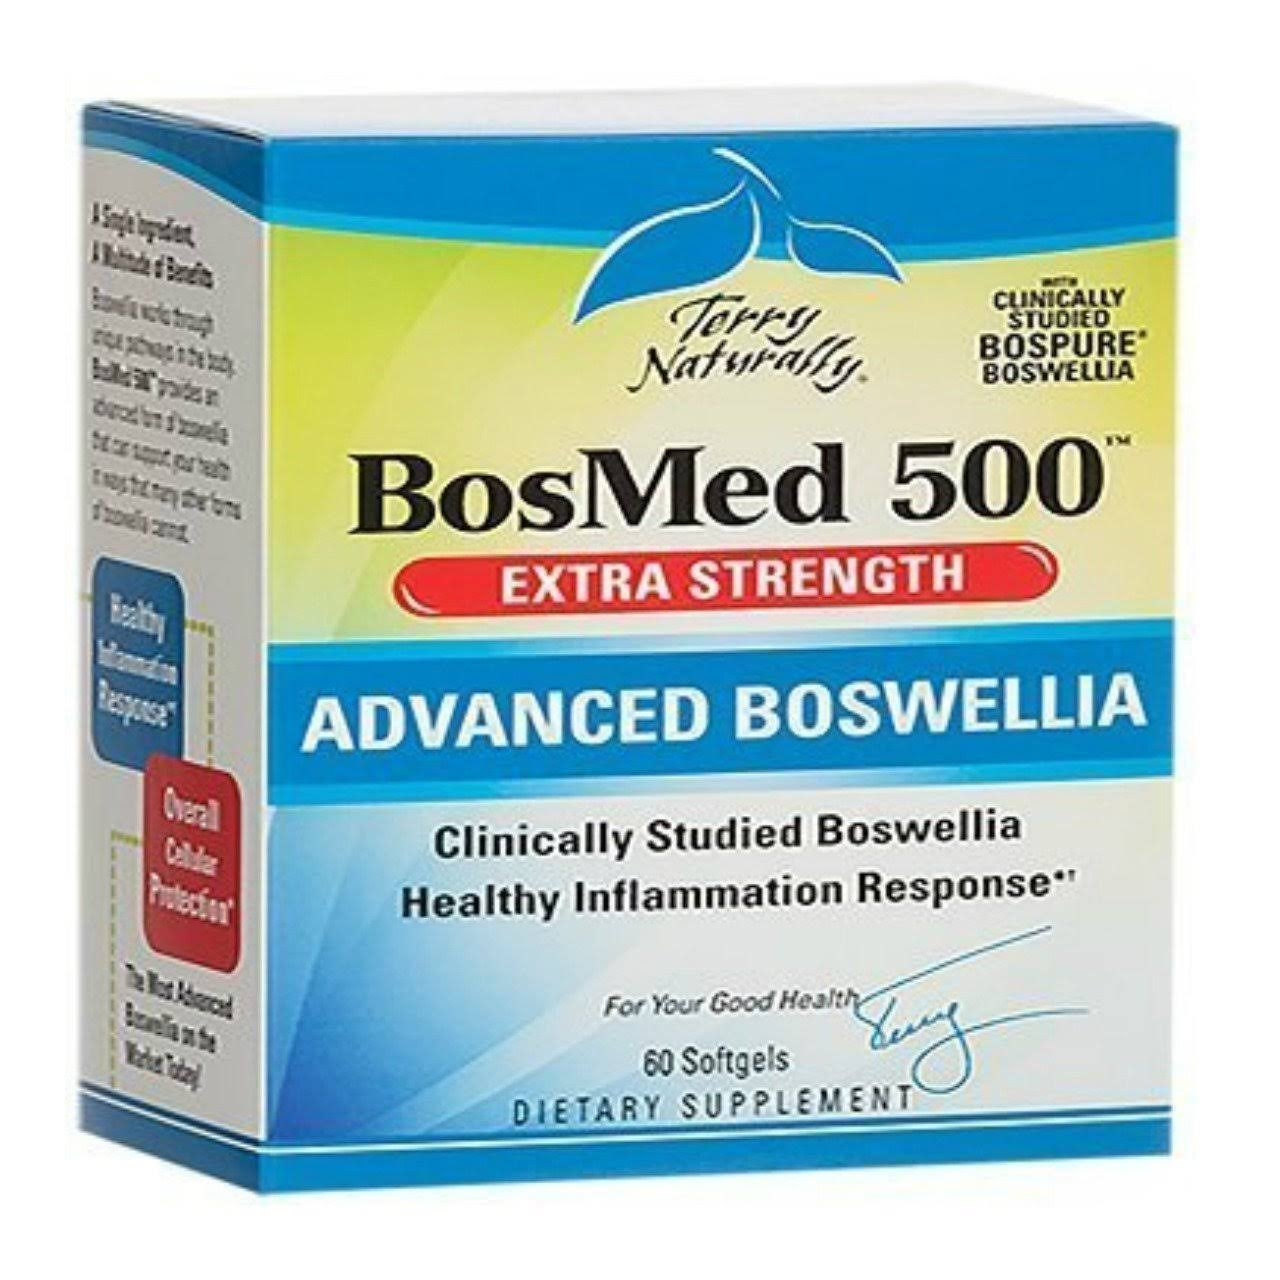 Bosmed 500 Advanced Boswellia Supplement - Extra Strength, 60 Softgels